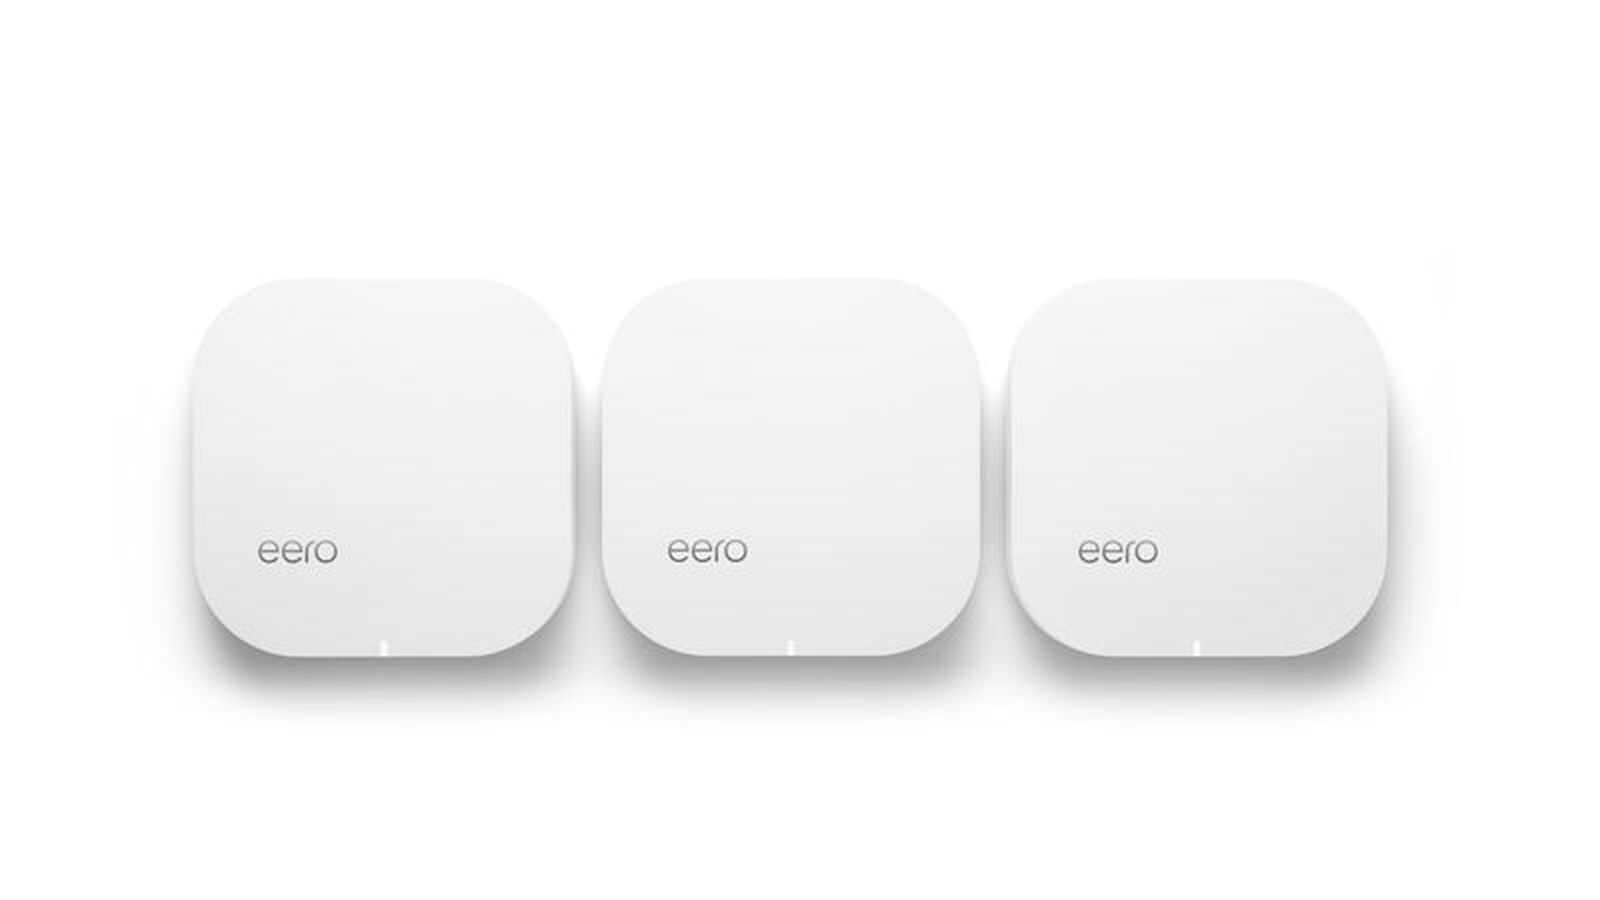 Eero 39 s fancy wi fi router has a chance to break through for Home router architecture